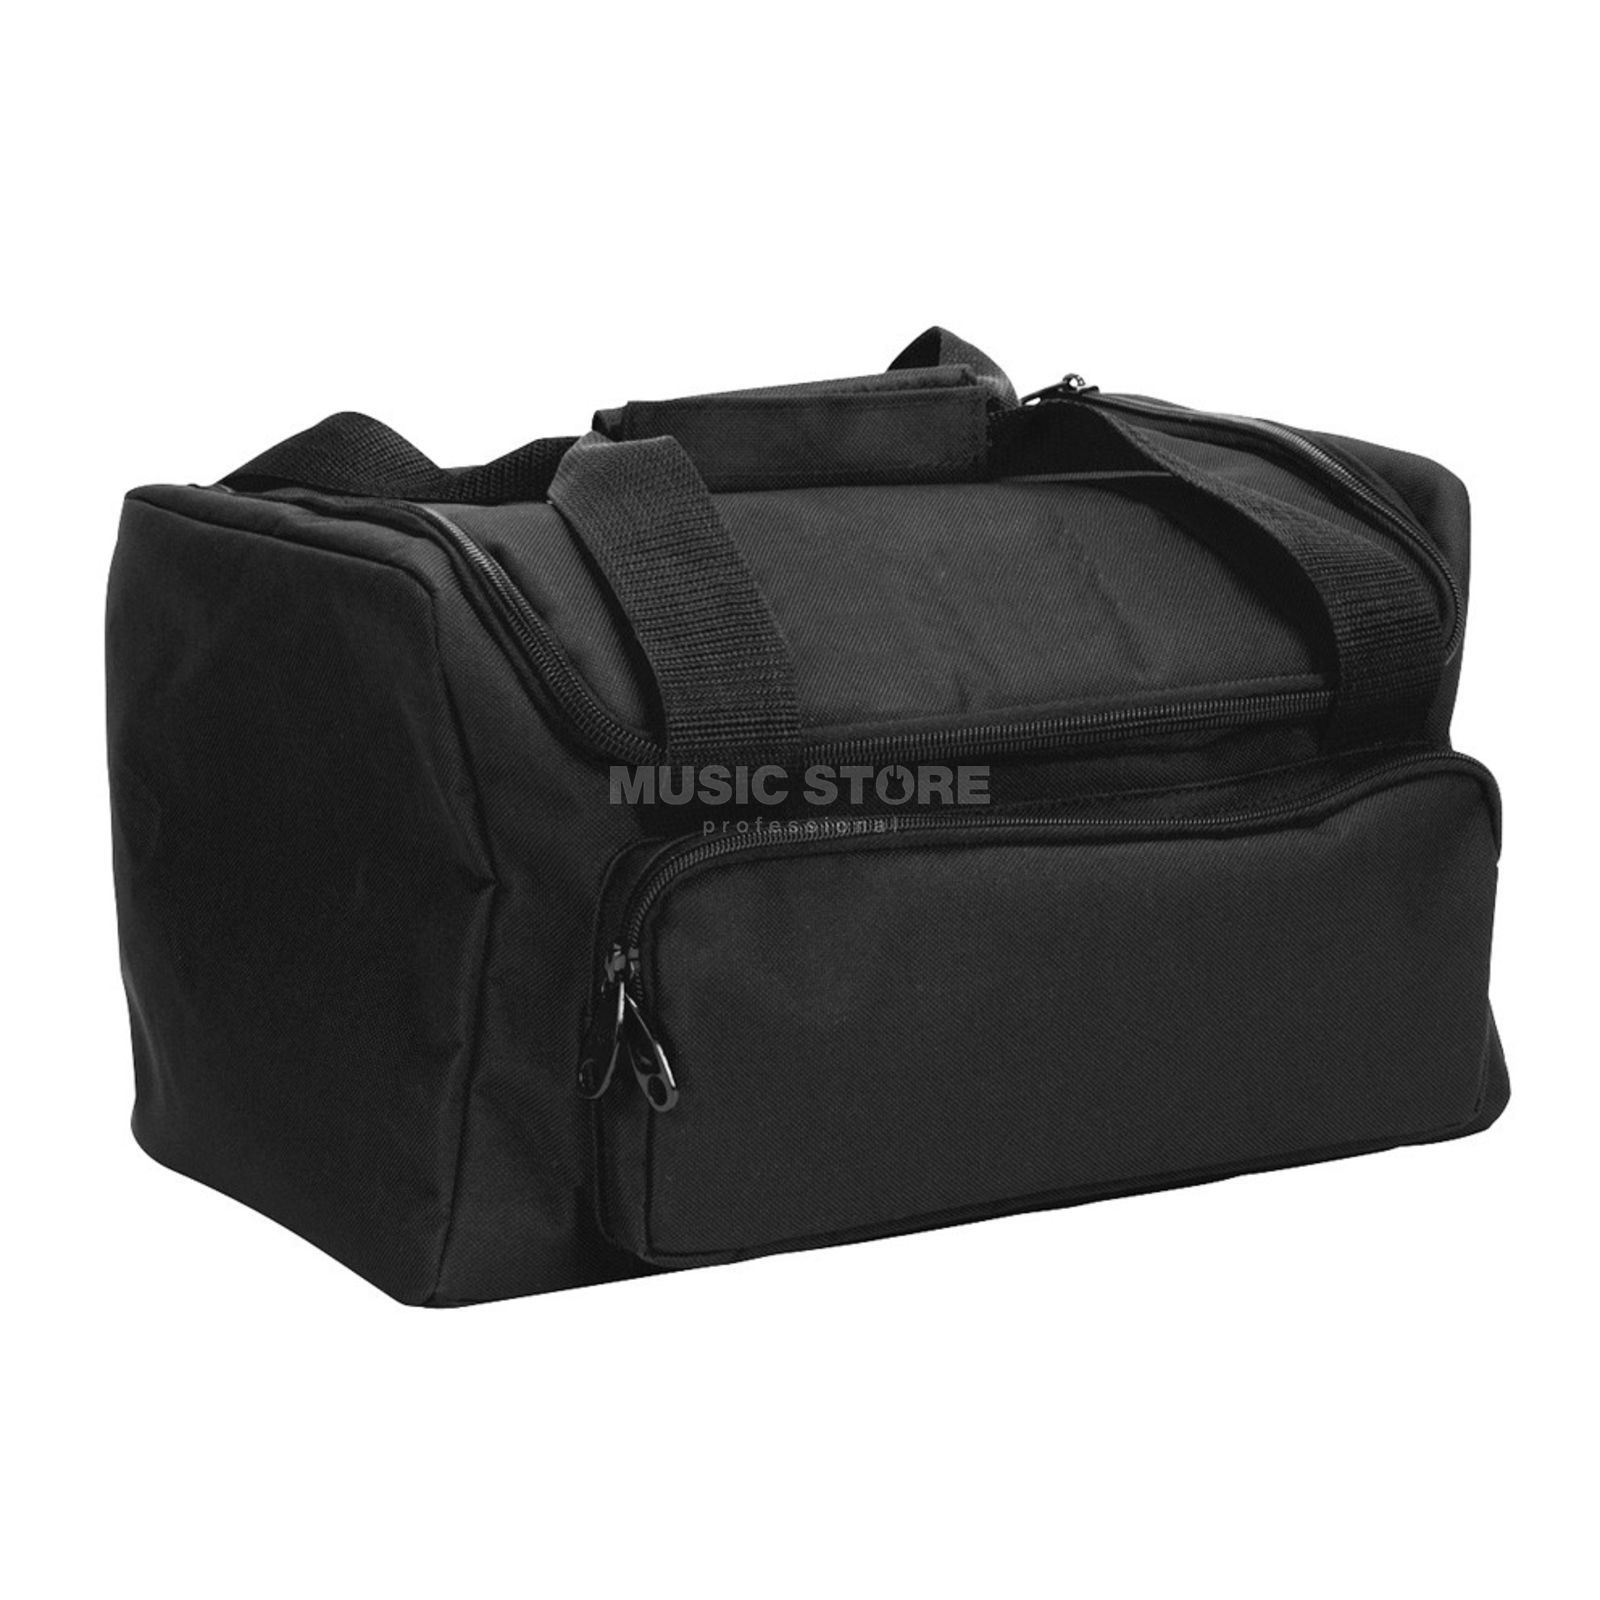 Accu Case ASC-AC-126 Transport Bag 355 x 220 x 170 mm Produktbillede